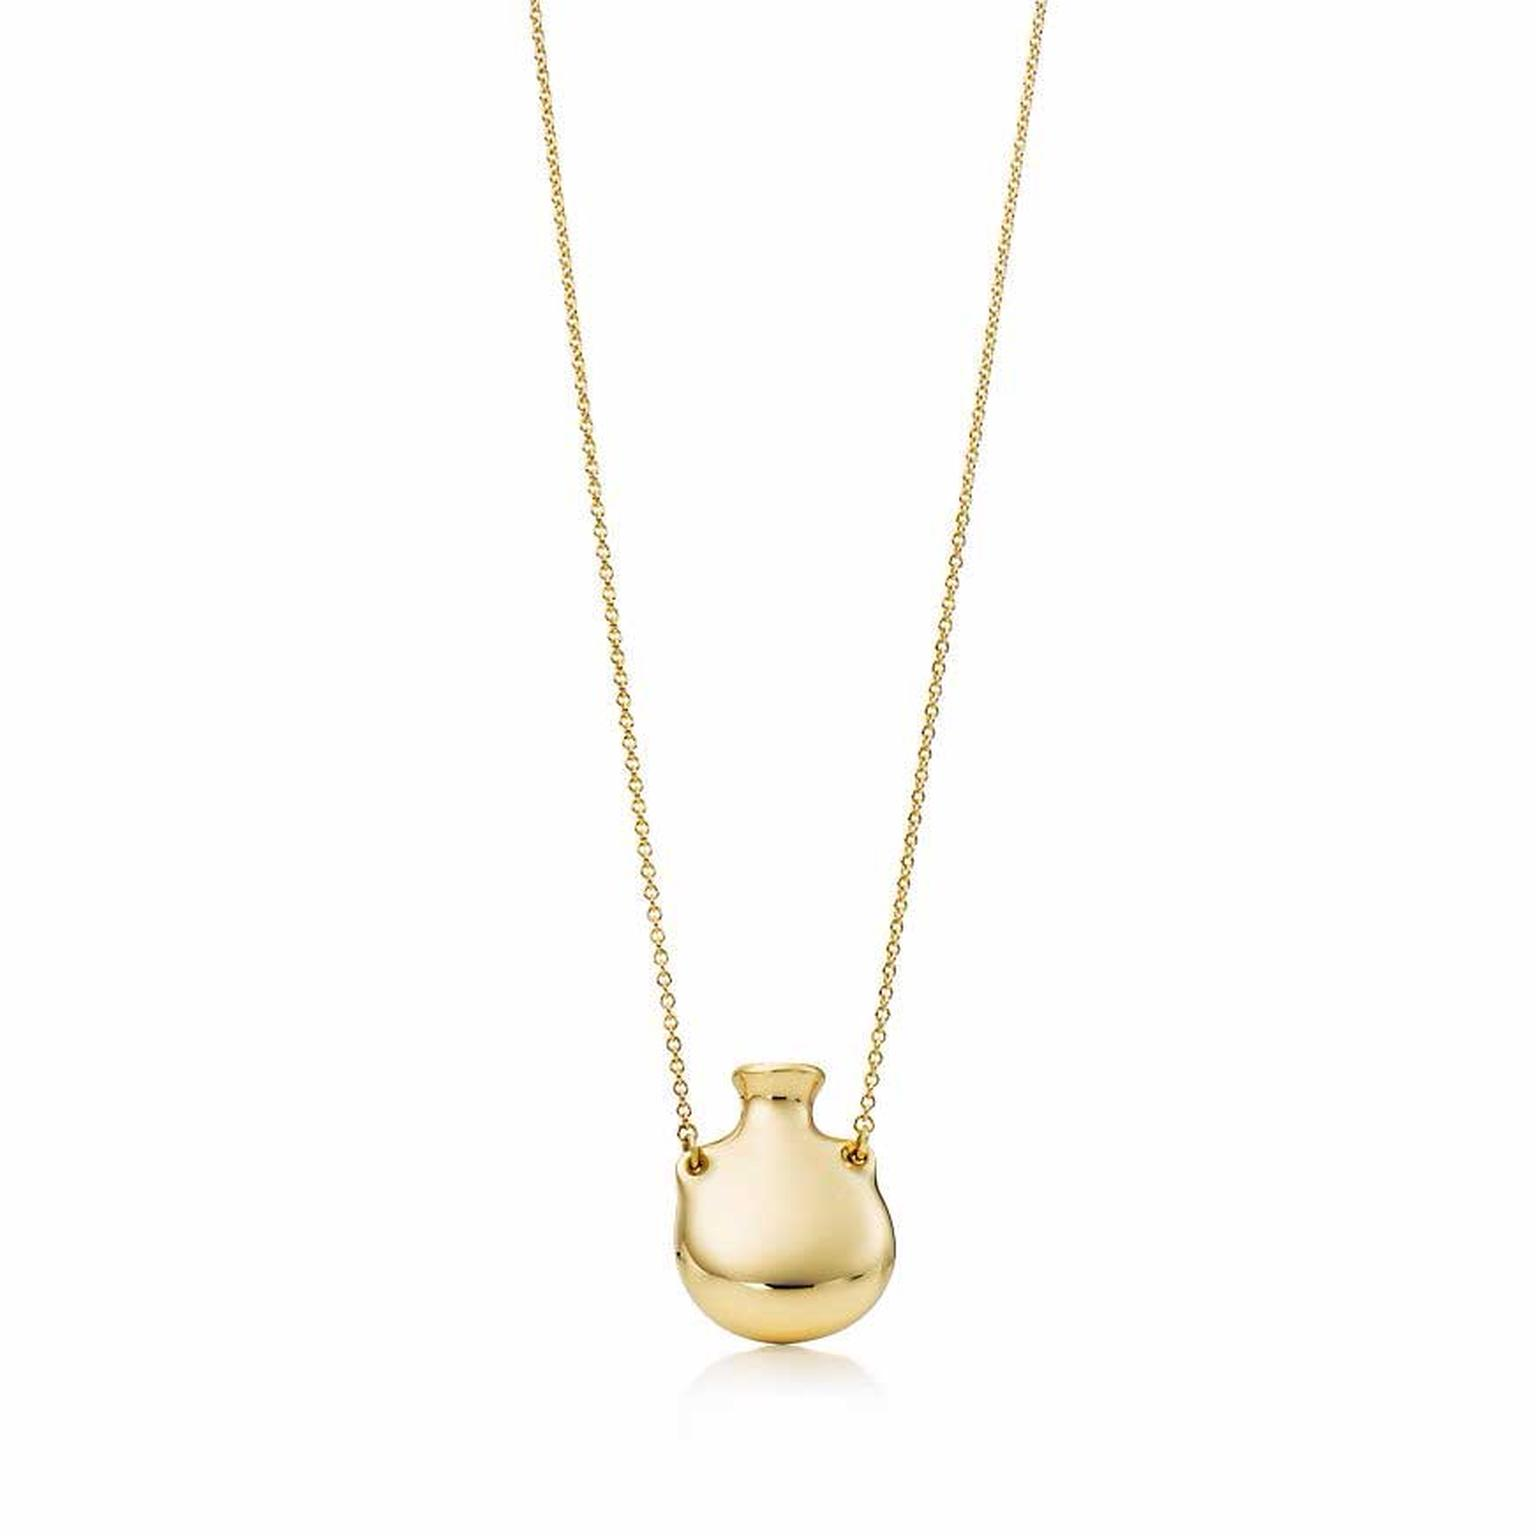 Elsa Peretti for Tiffany Bottle open pendant in yellow gold